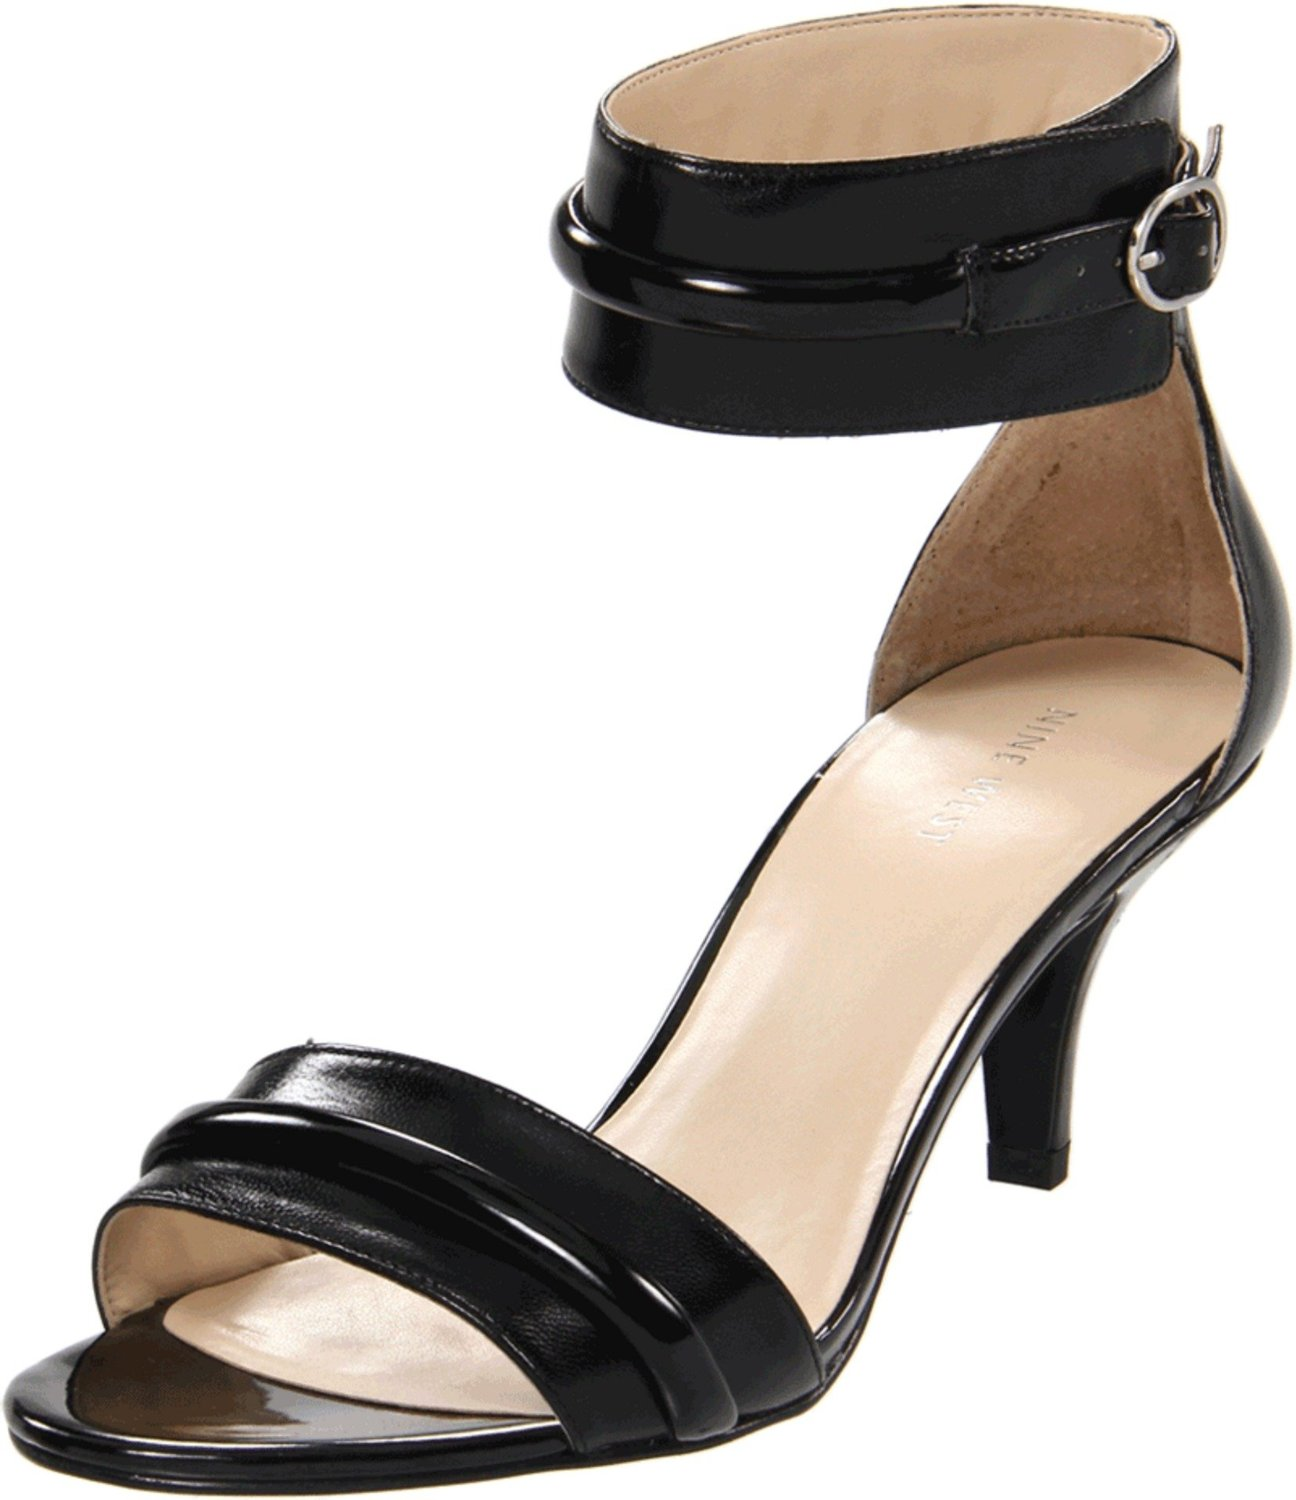 Ankle Strap Low Heel Sandals - Is Heel